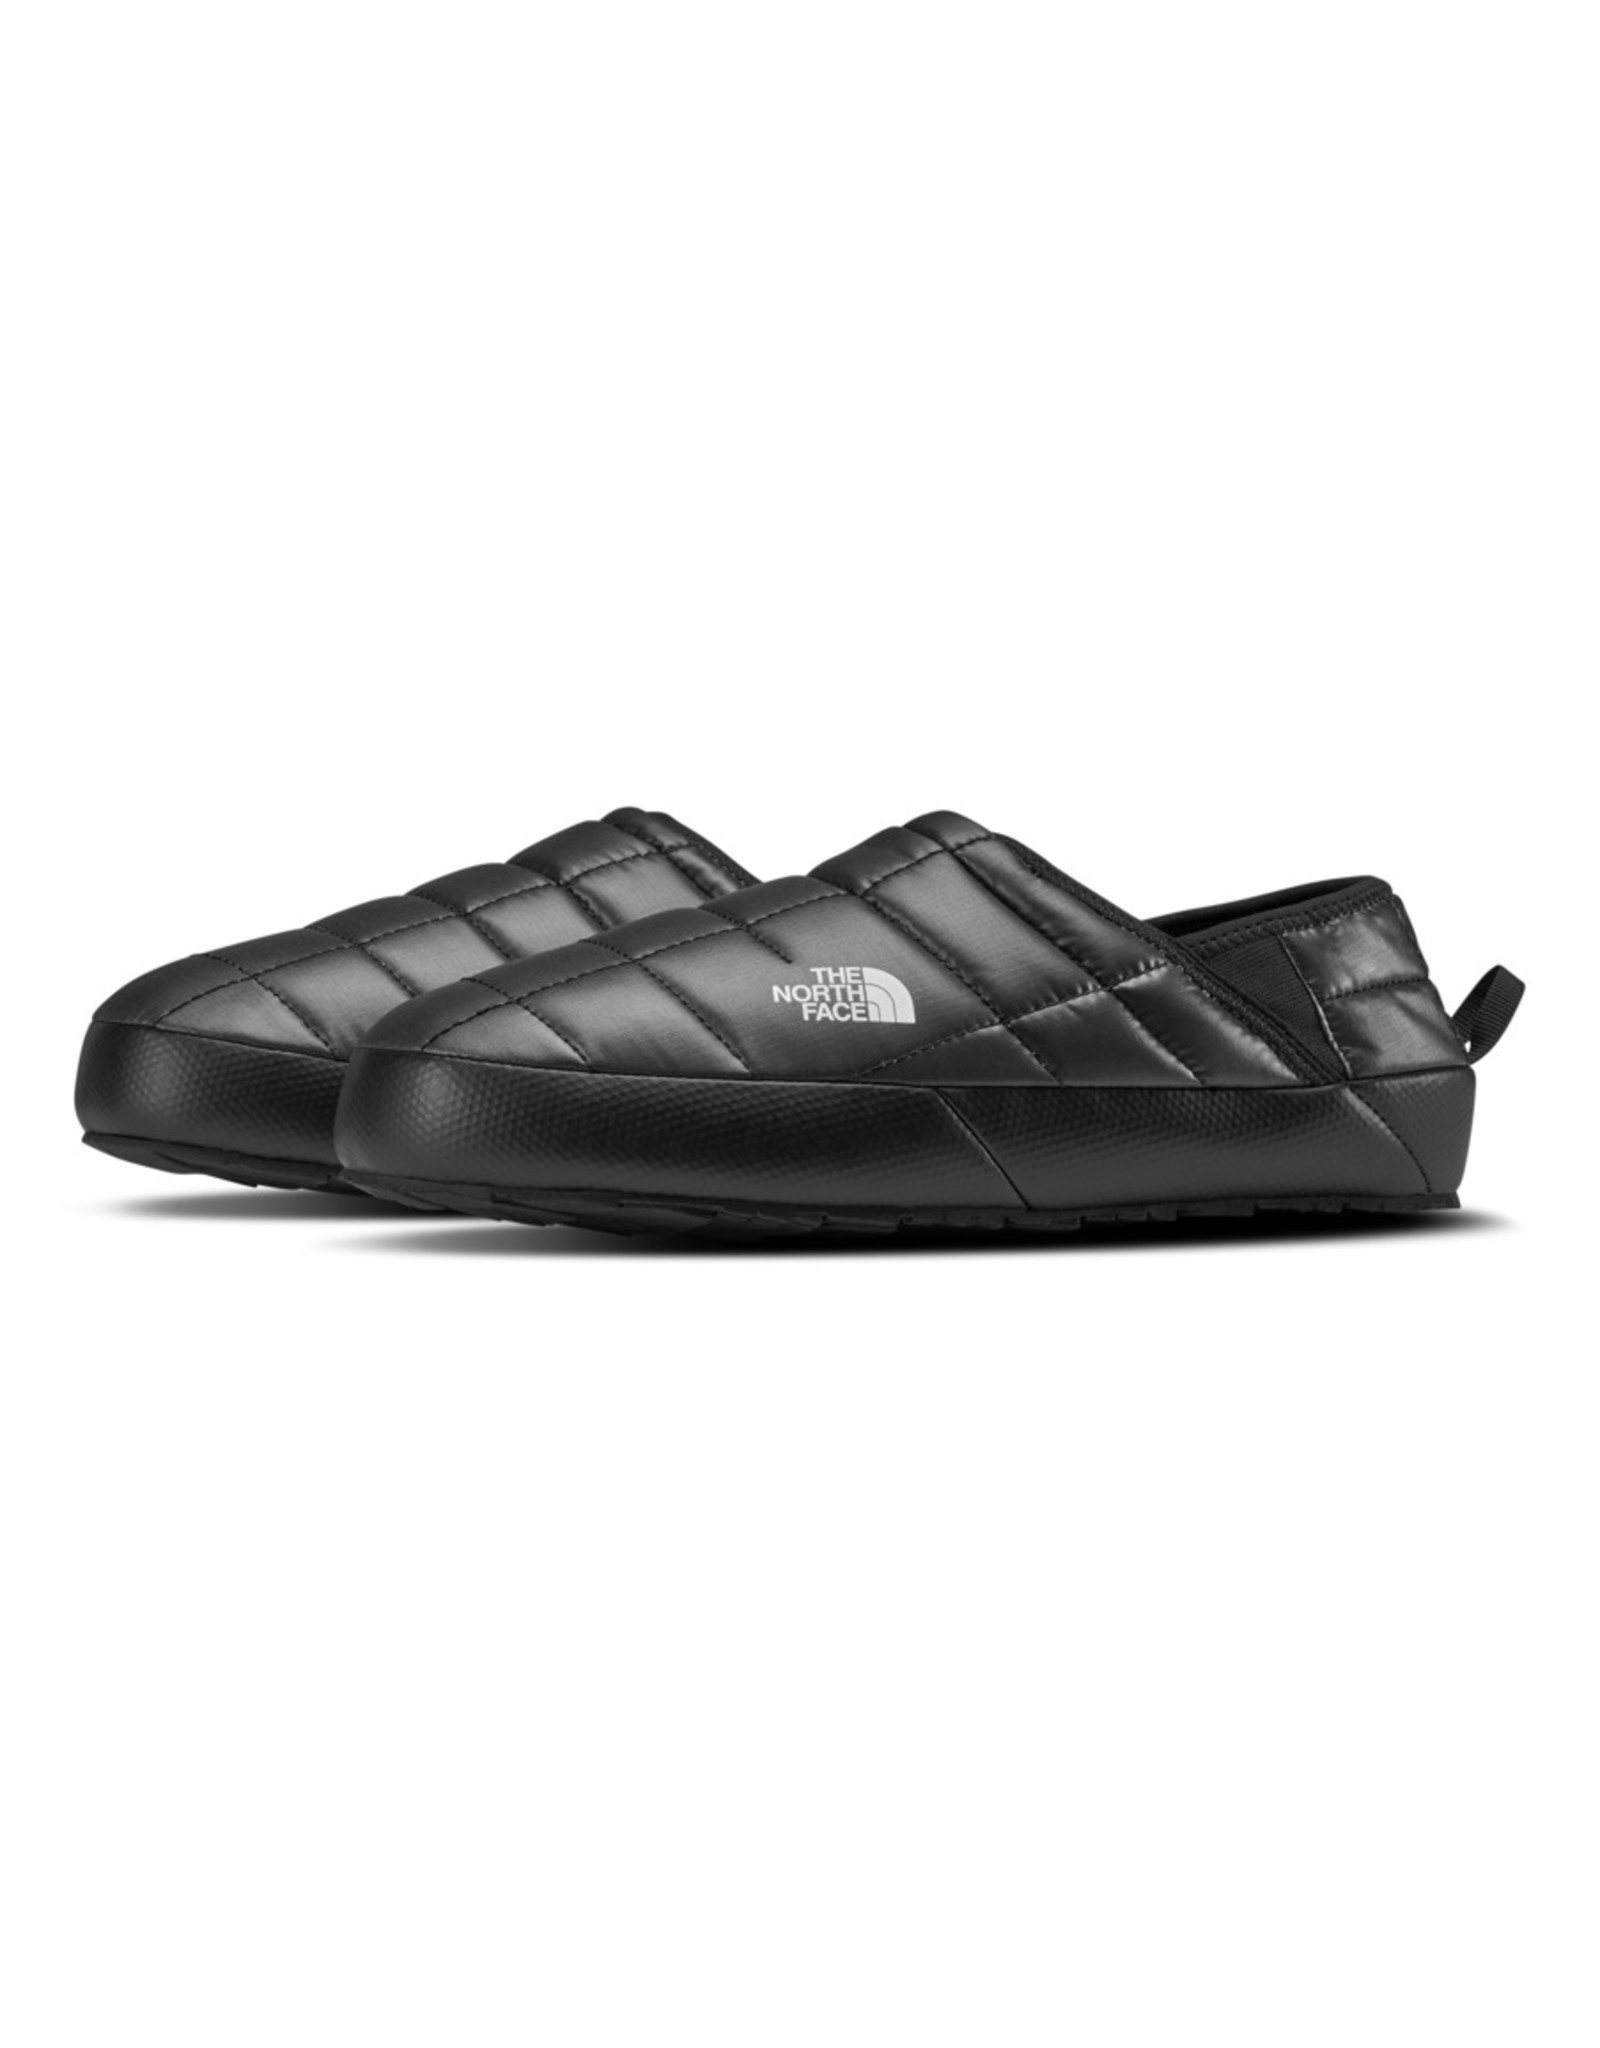 The North Face The North Face Men's Thermoball Traction Mule V